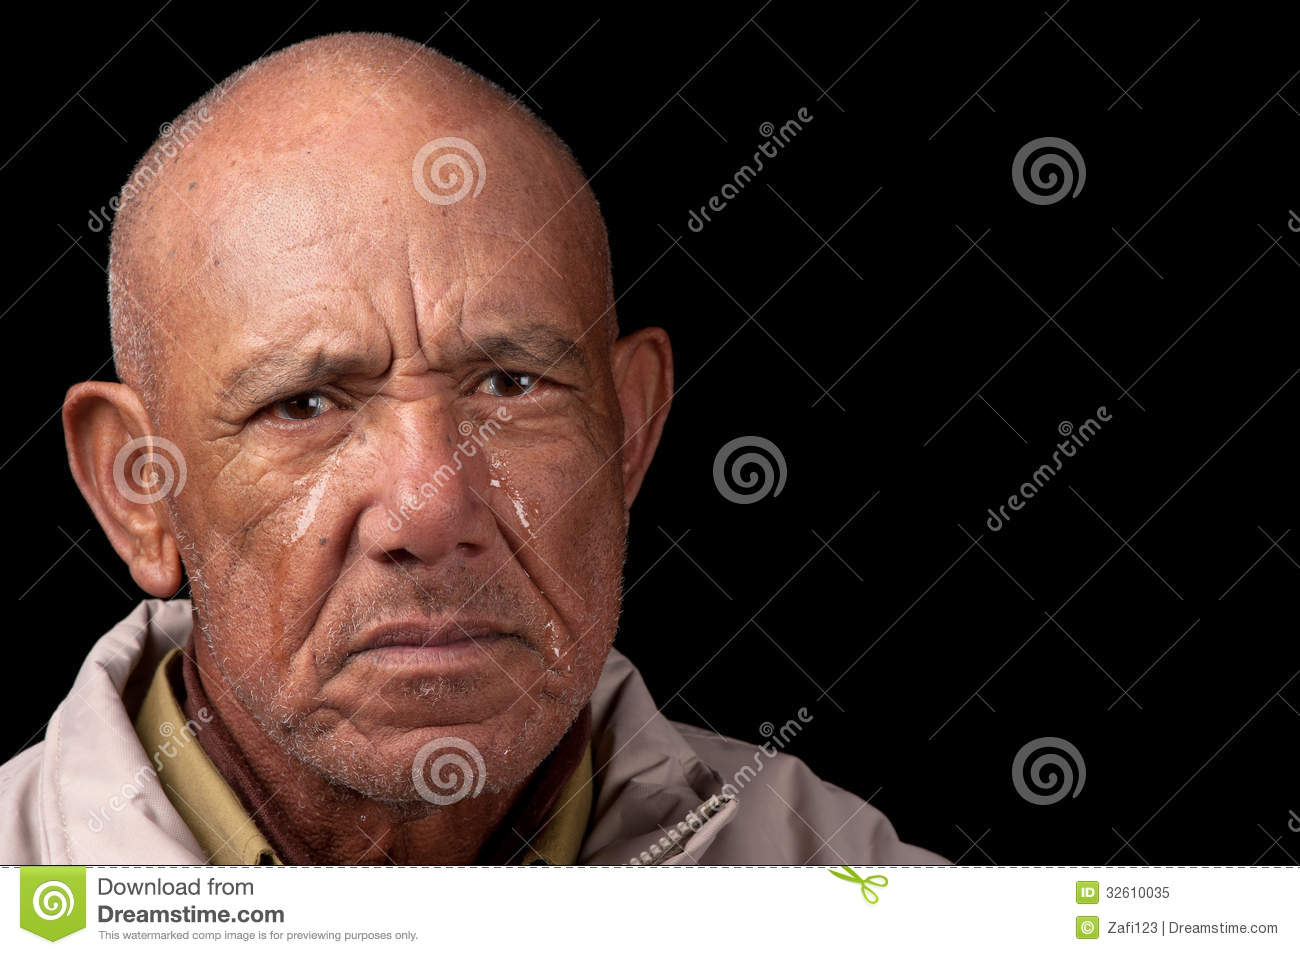 old man cry meme - Buscar con Google | FUNNY! XD | Pinterest ...